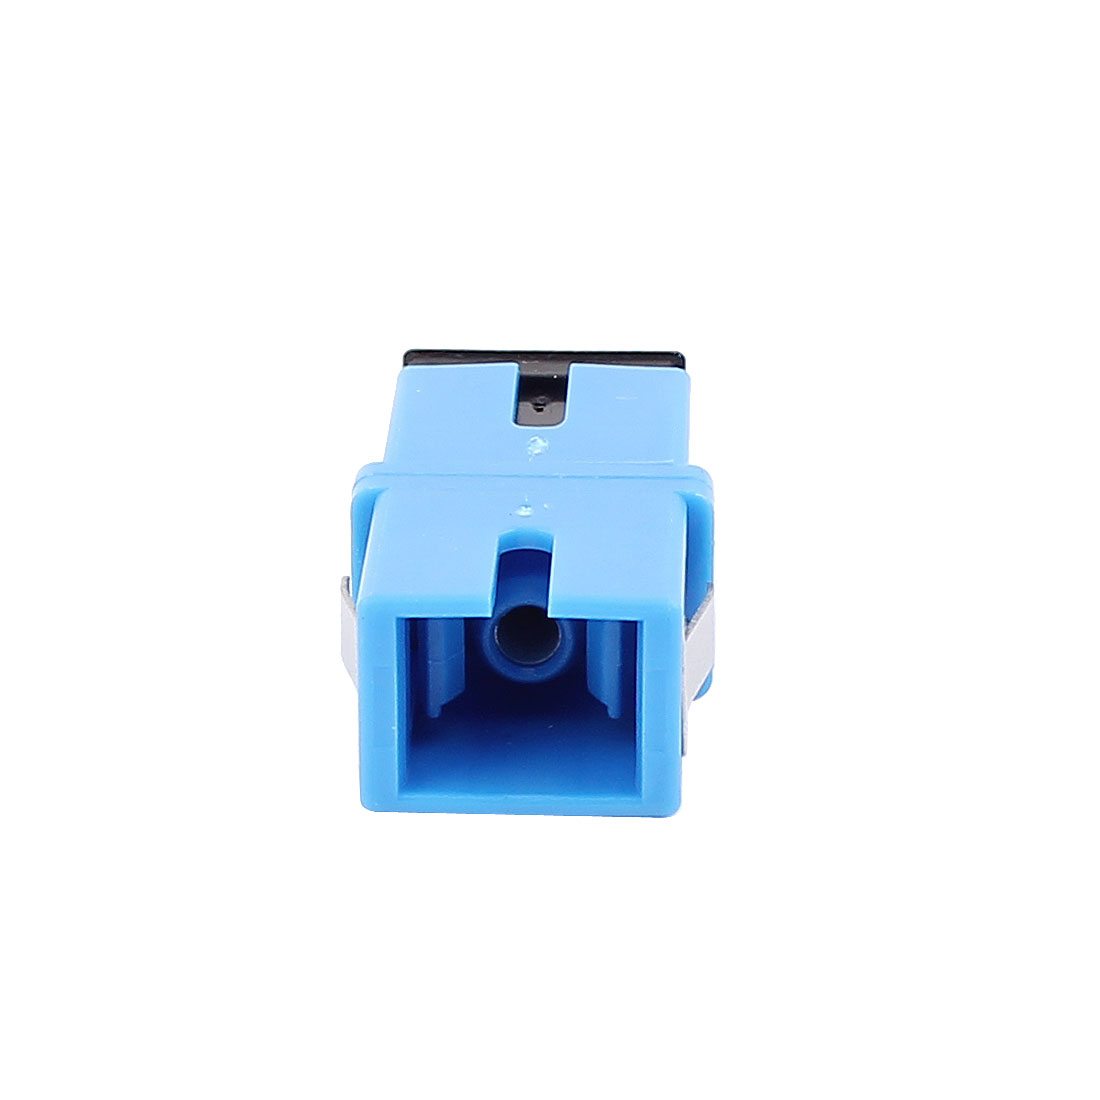 SC/SC Simplex MM SM Fiber Optical Flange Cable Connector Black Blue